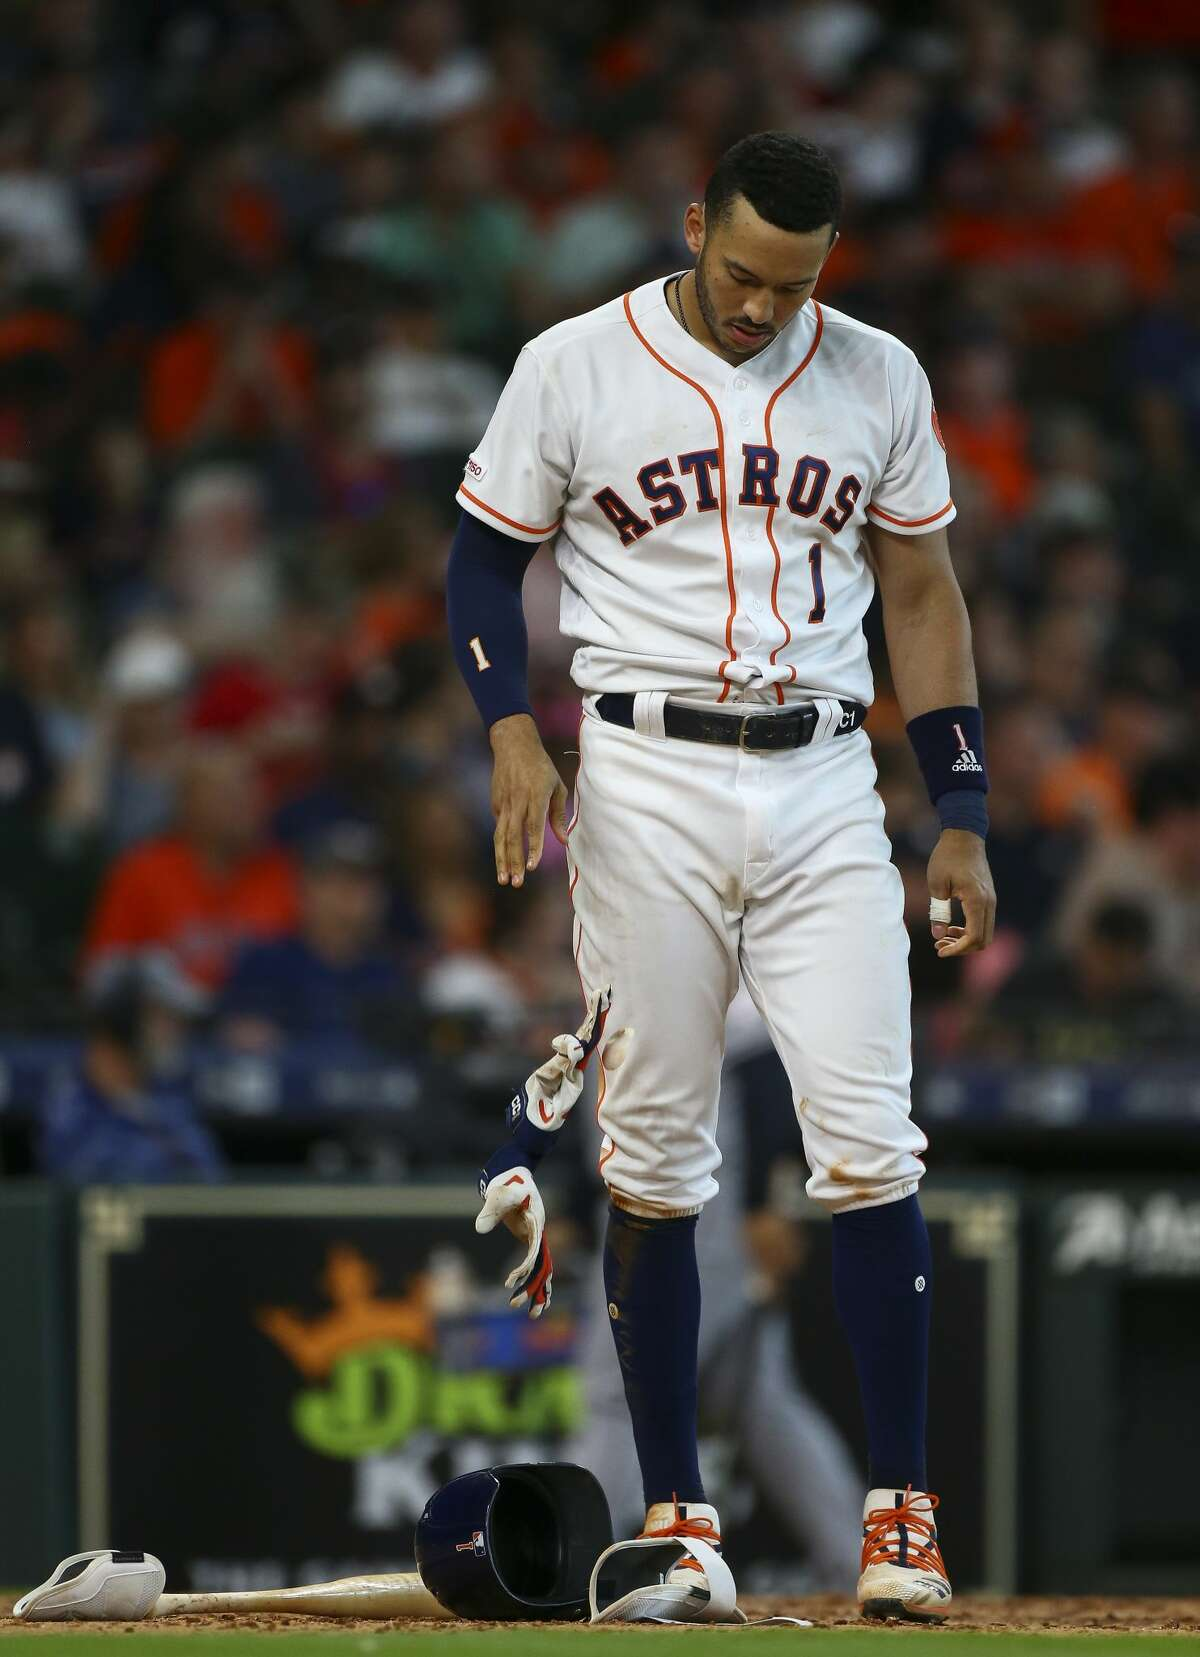 Houston Astros shortstop Carlos Correa (1) reacts after striking out against the Cleveland Indians during the eighth inning of an MLB game at Minute Maid Park Saturday, April 27, 2019, in Houston.